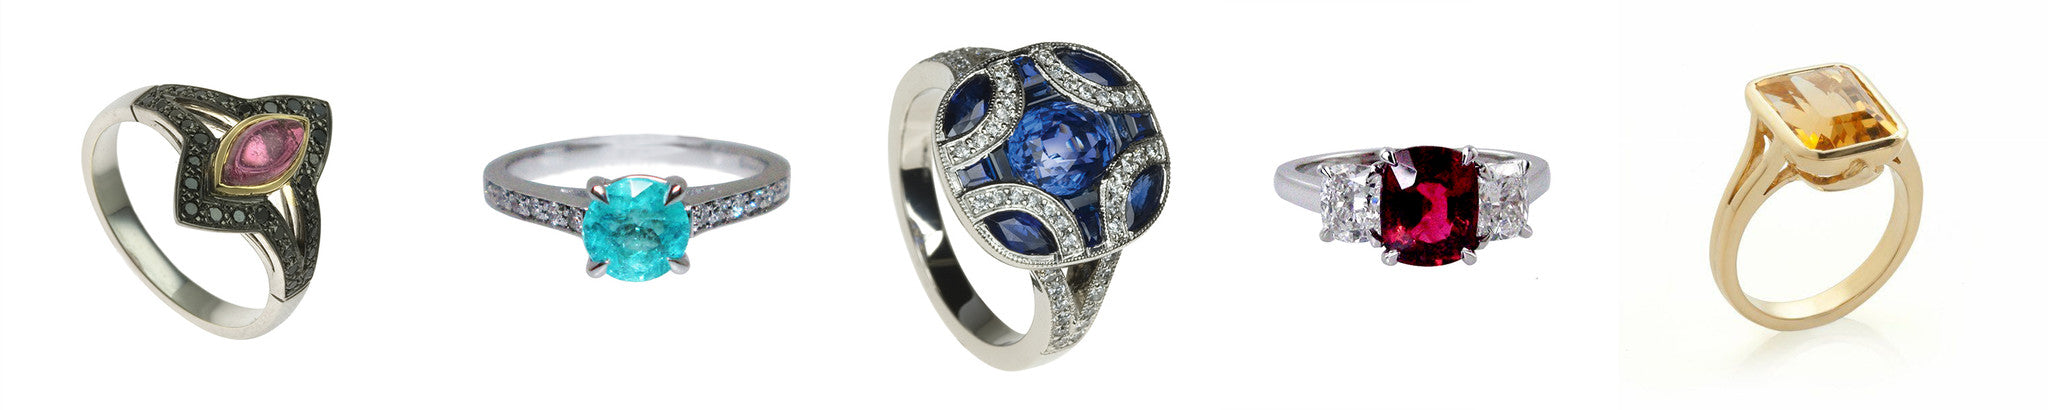 Rare precious gemstone ring gallery